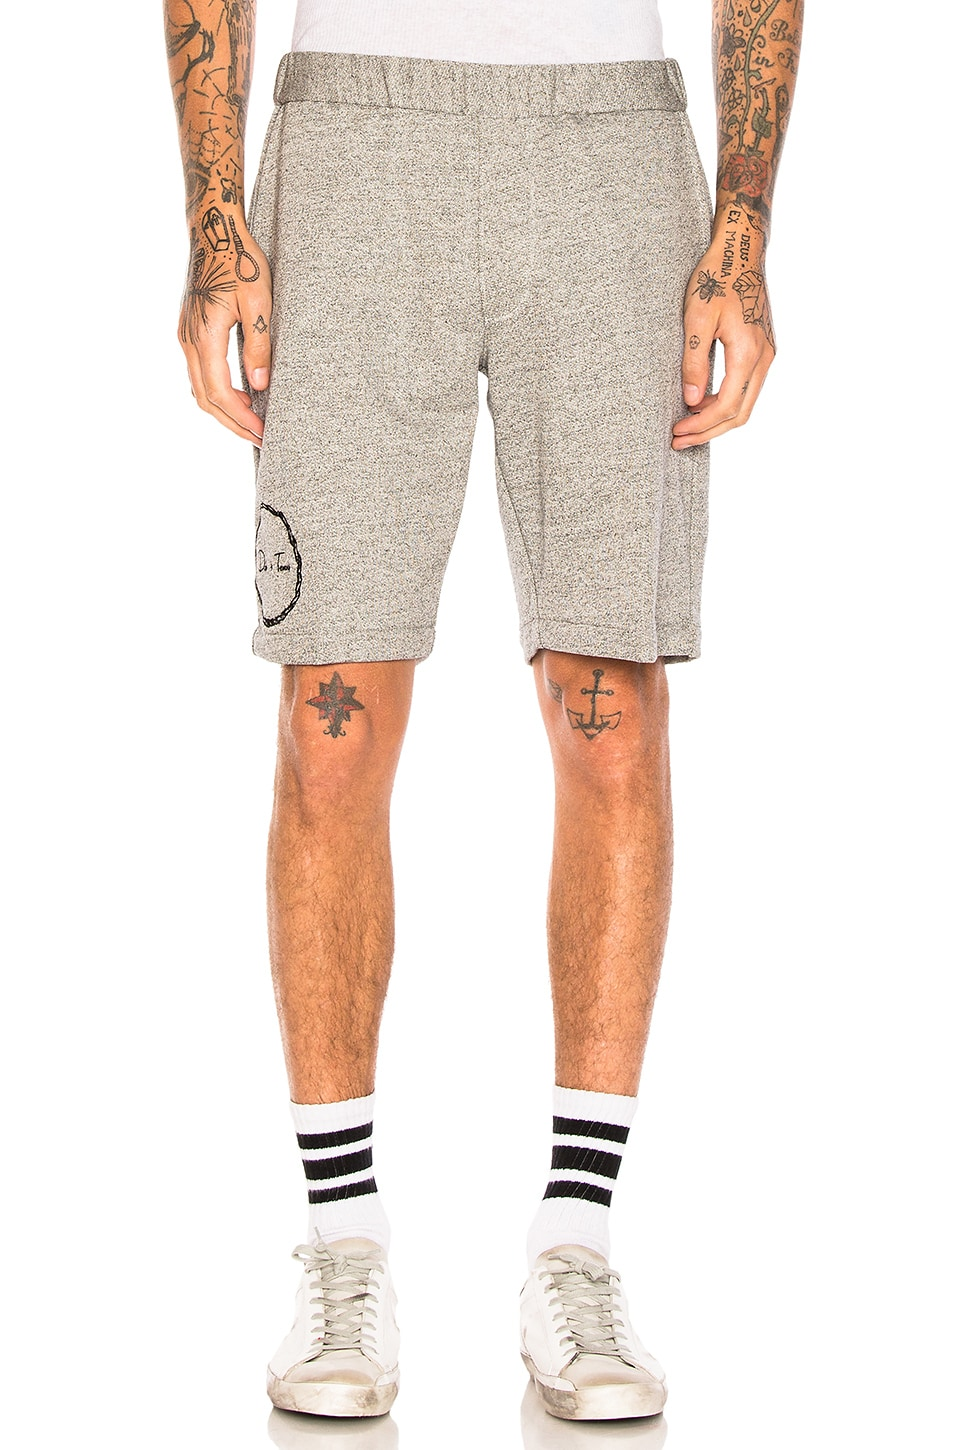 Nobby Shorts by Death to Tennis